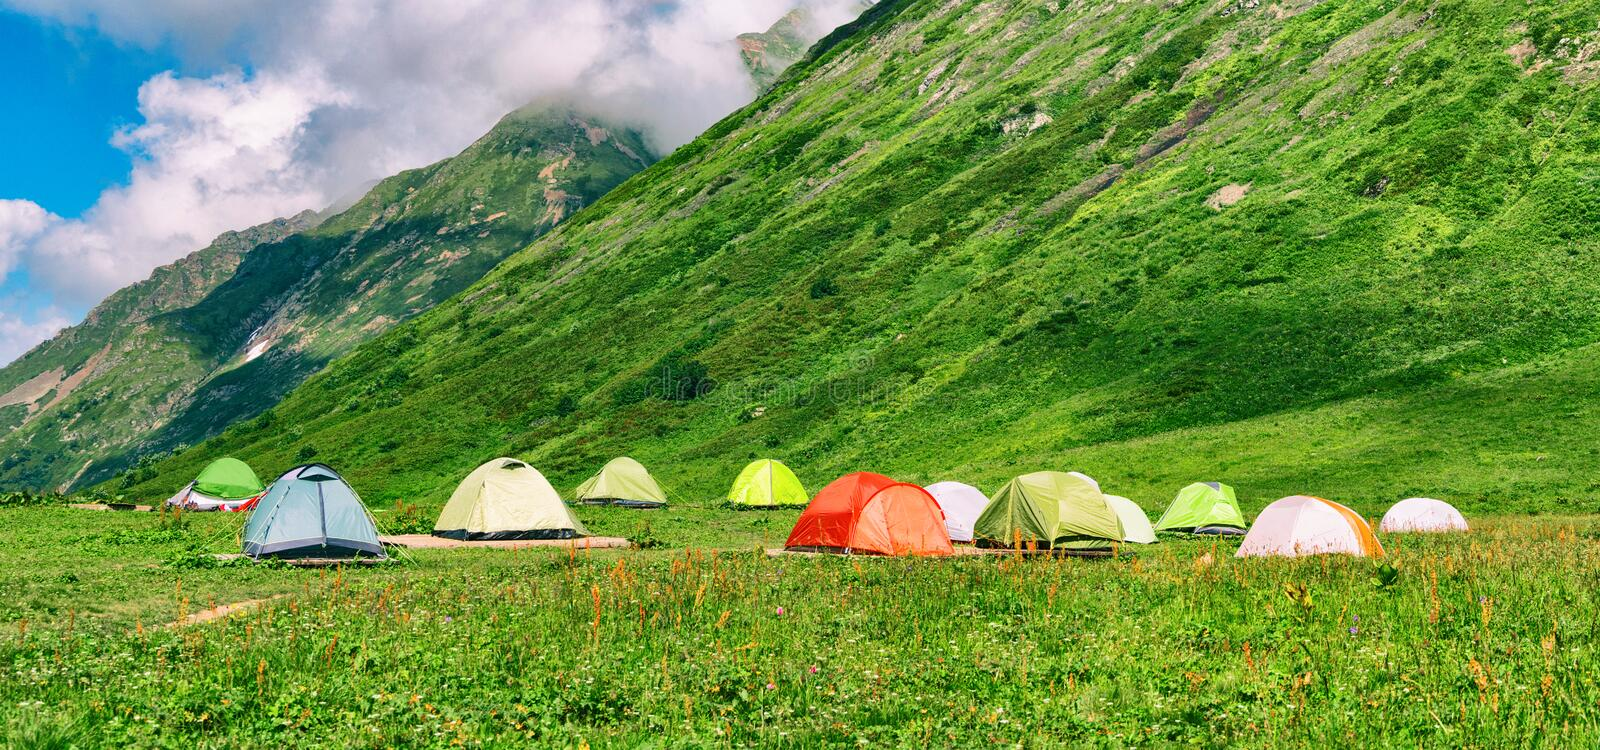 Camping tents in campsite at mountains background royalty free stock photos